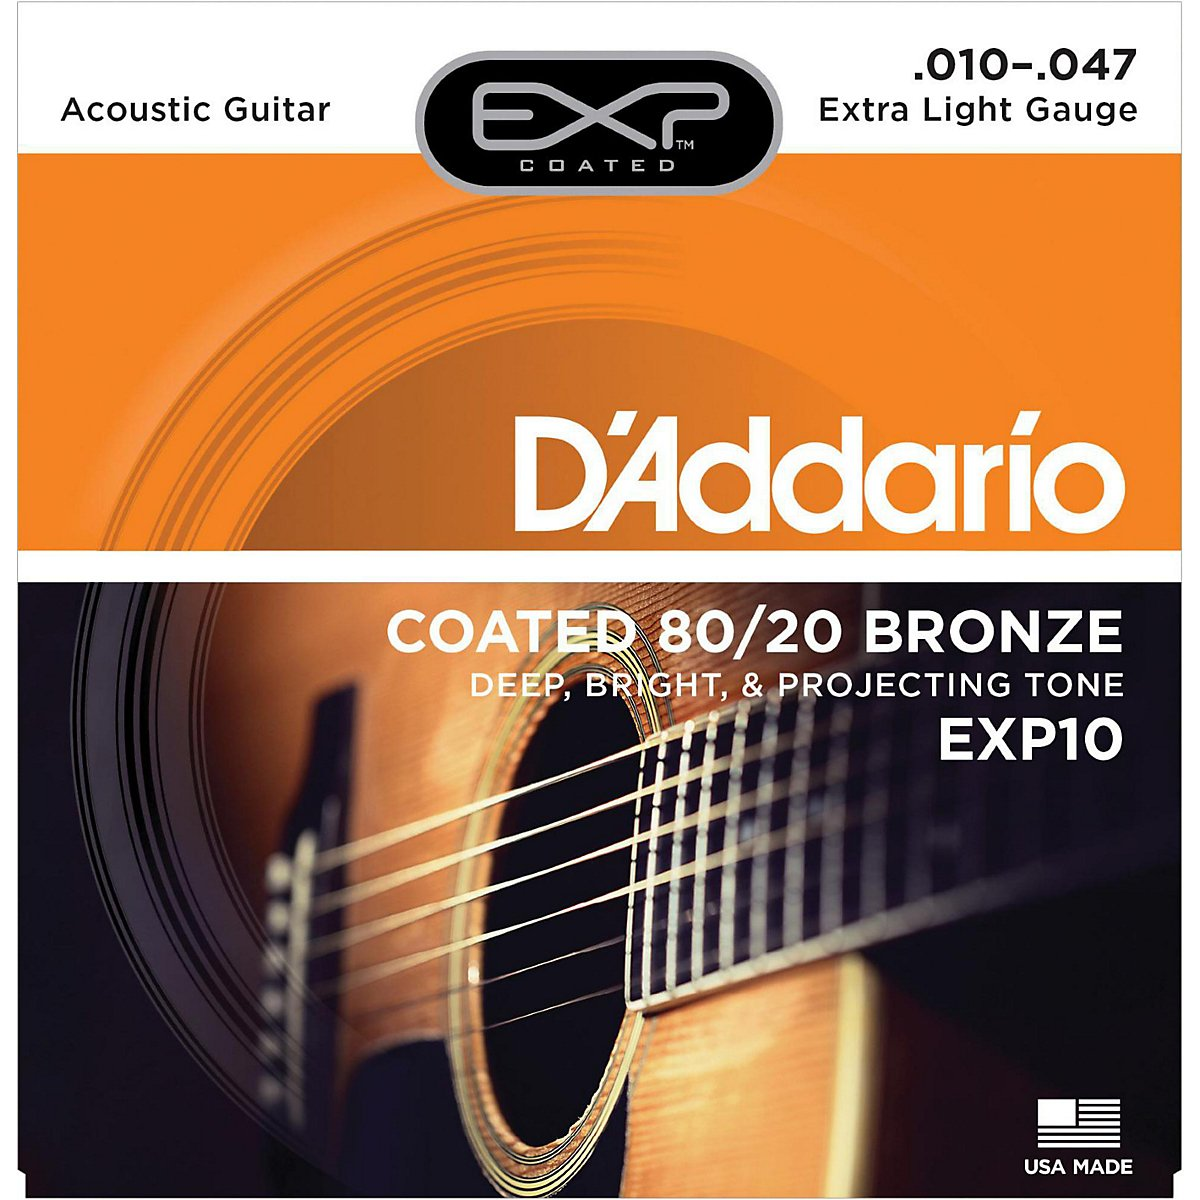 D'Addario EXP17 Coated Phosphor Bronze Medium Acoustic Guitar Strings D' Addario Ltd Musical Instrumenmts Portable_Electronics martin ernie ball rotosound elixir daddario dadadrio diadrio